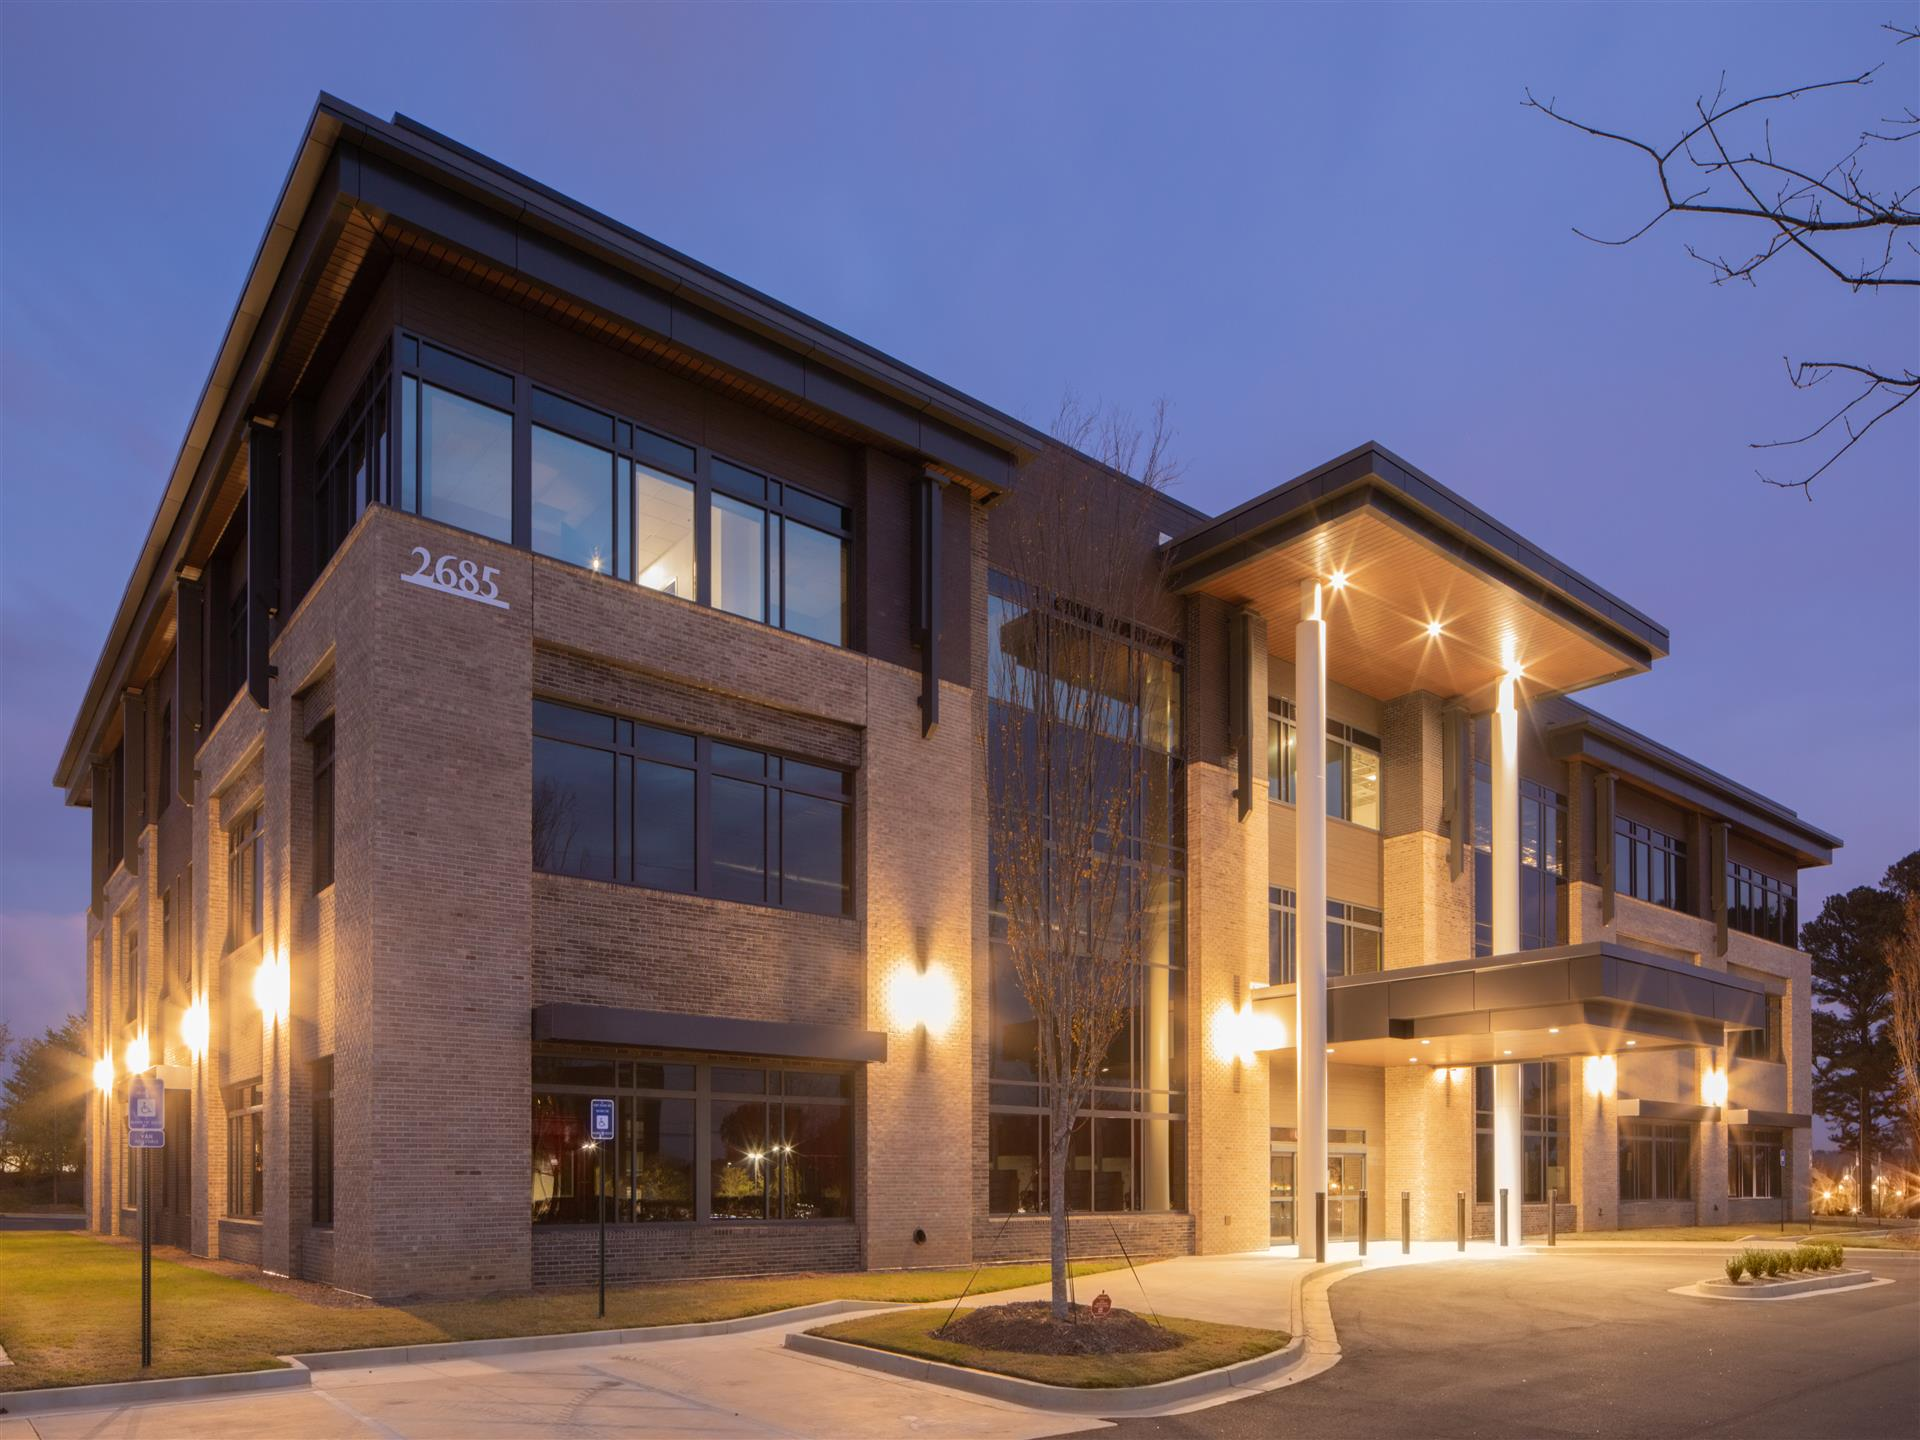 Night shot with exterior lights on for a 2 story building.  Lots of windows and 2-columns at the entrance